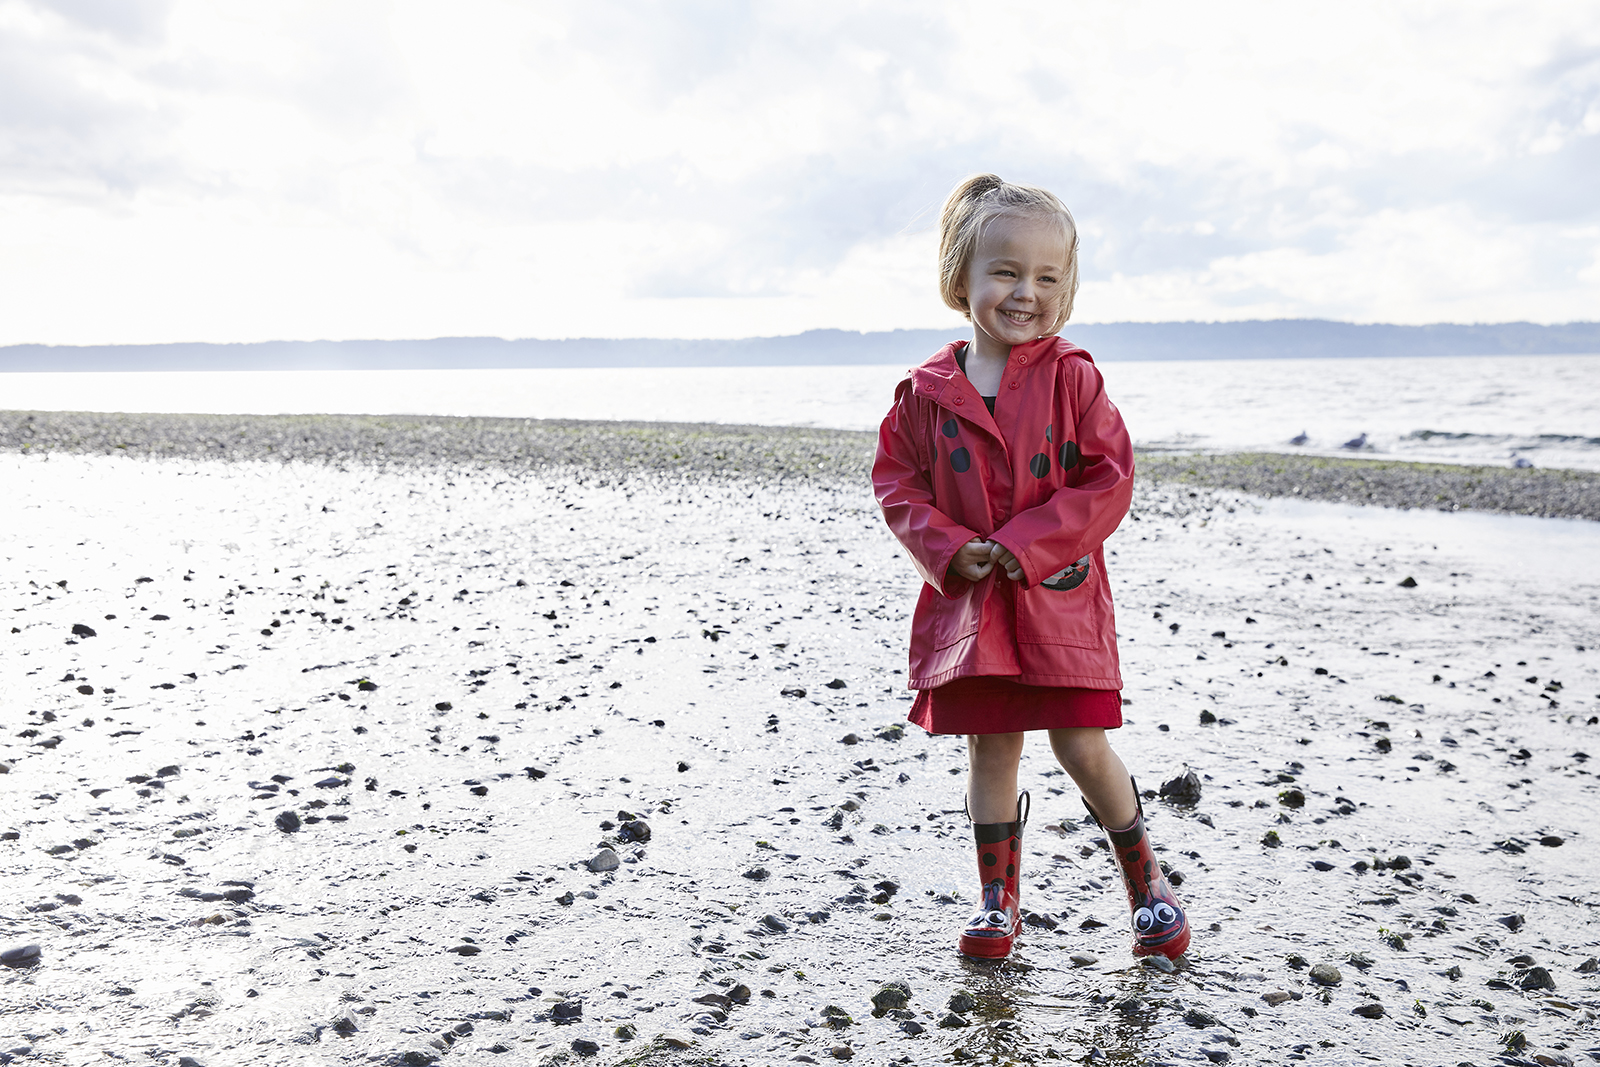 Girl in ladybug rain gear at beach